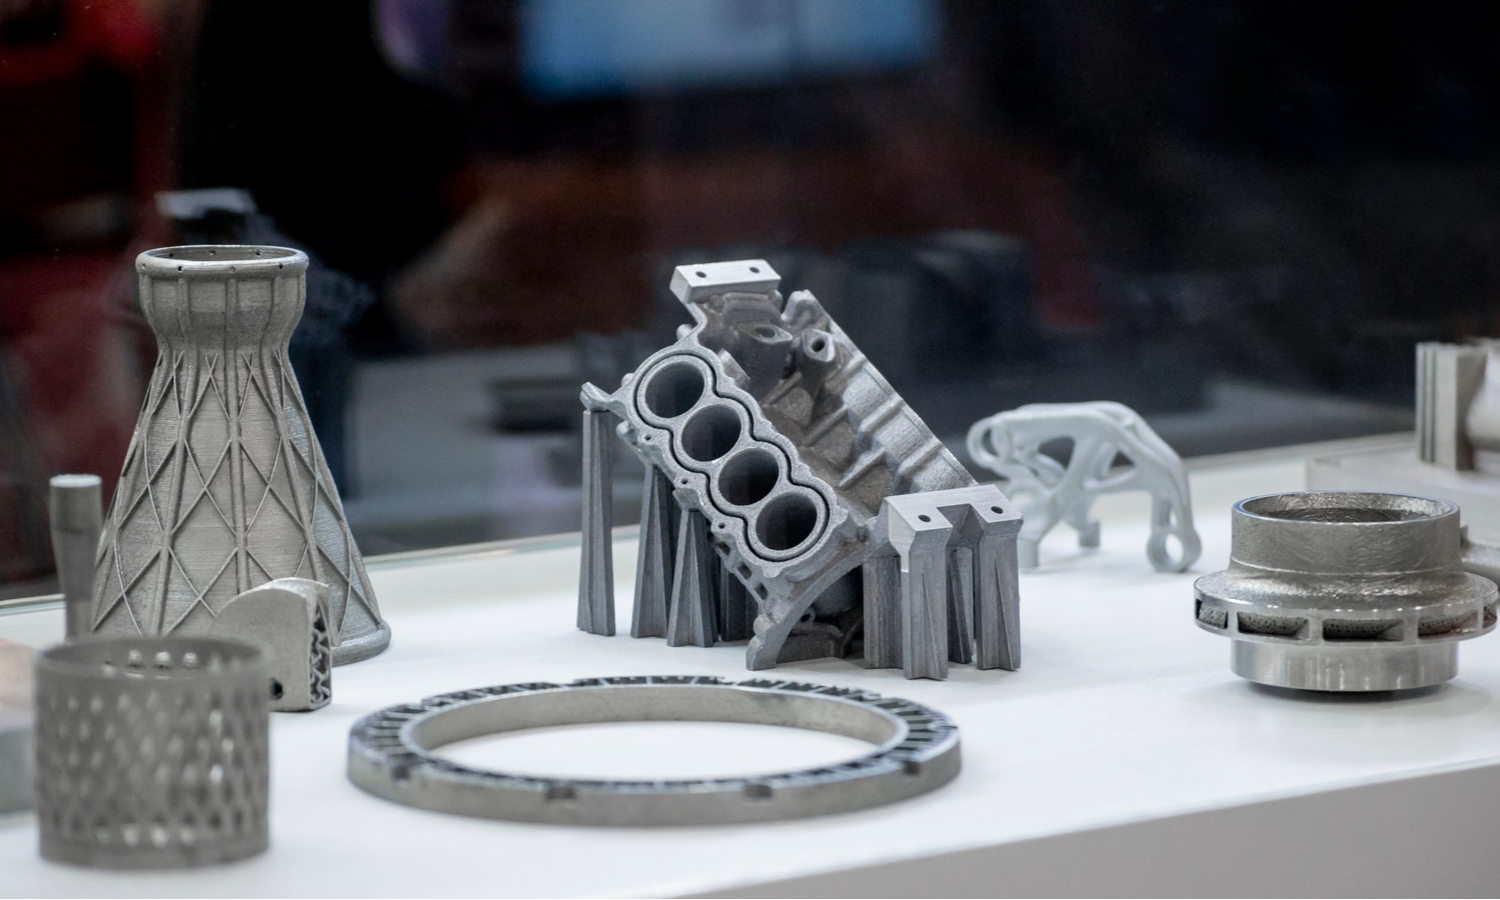 Application Spotlight: 3D Printing for End-Part Production